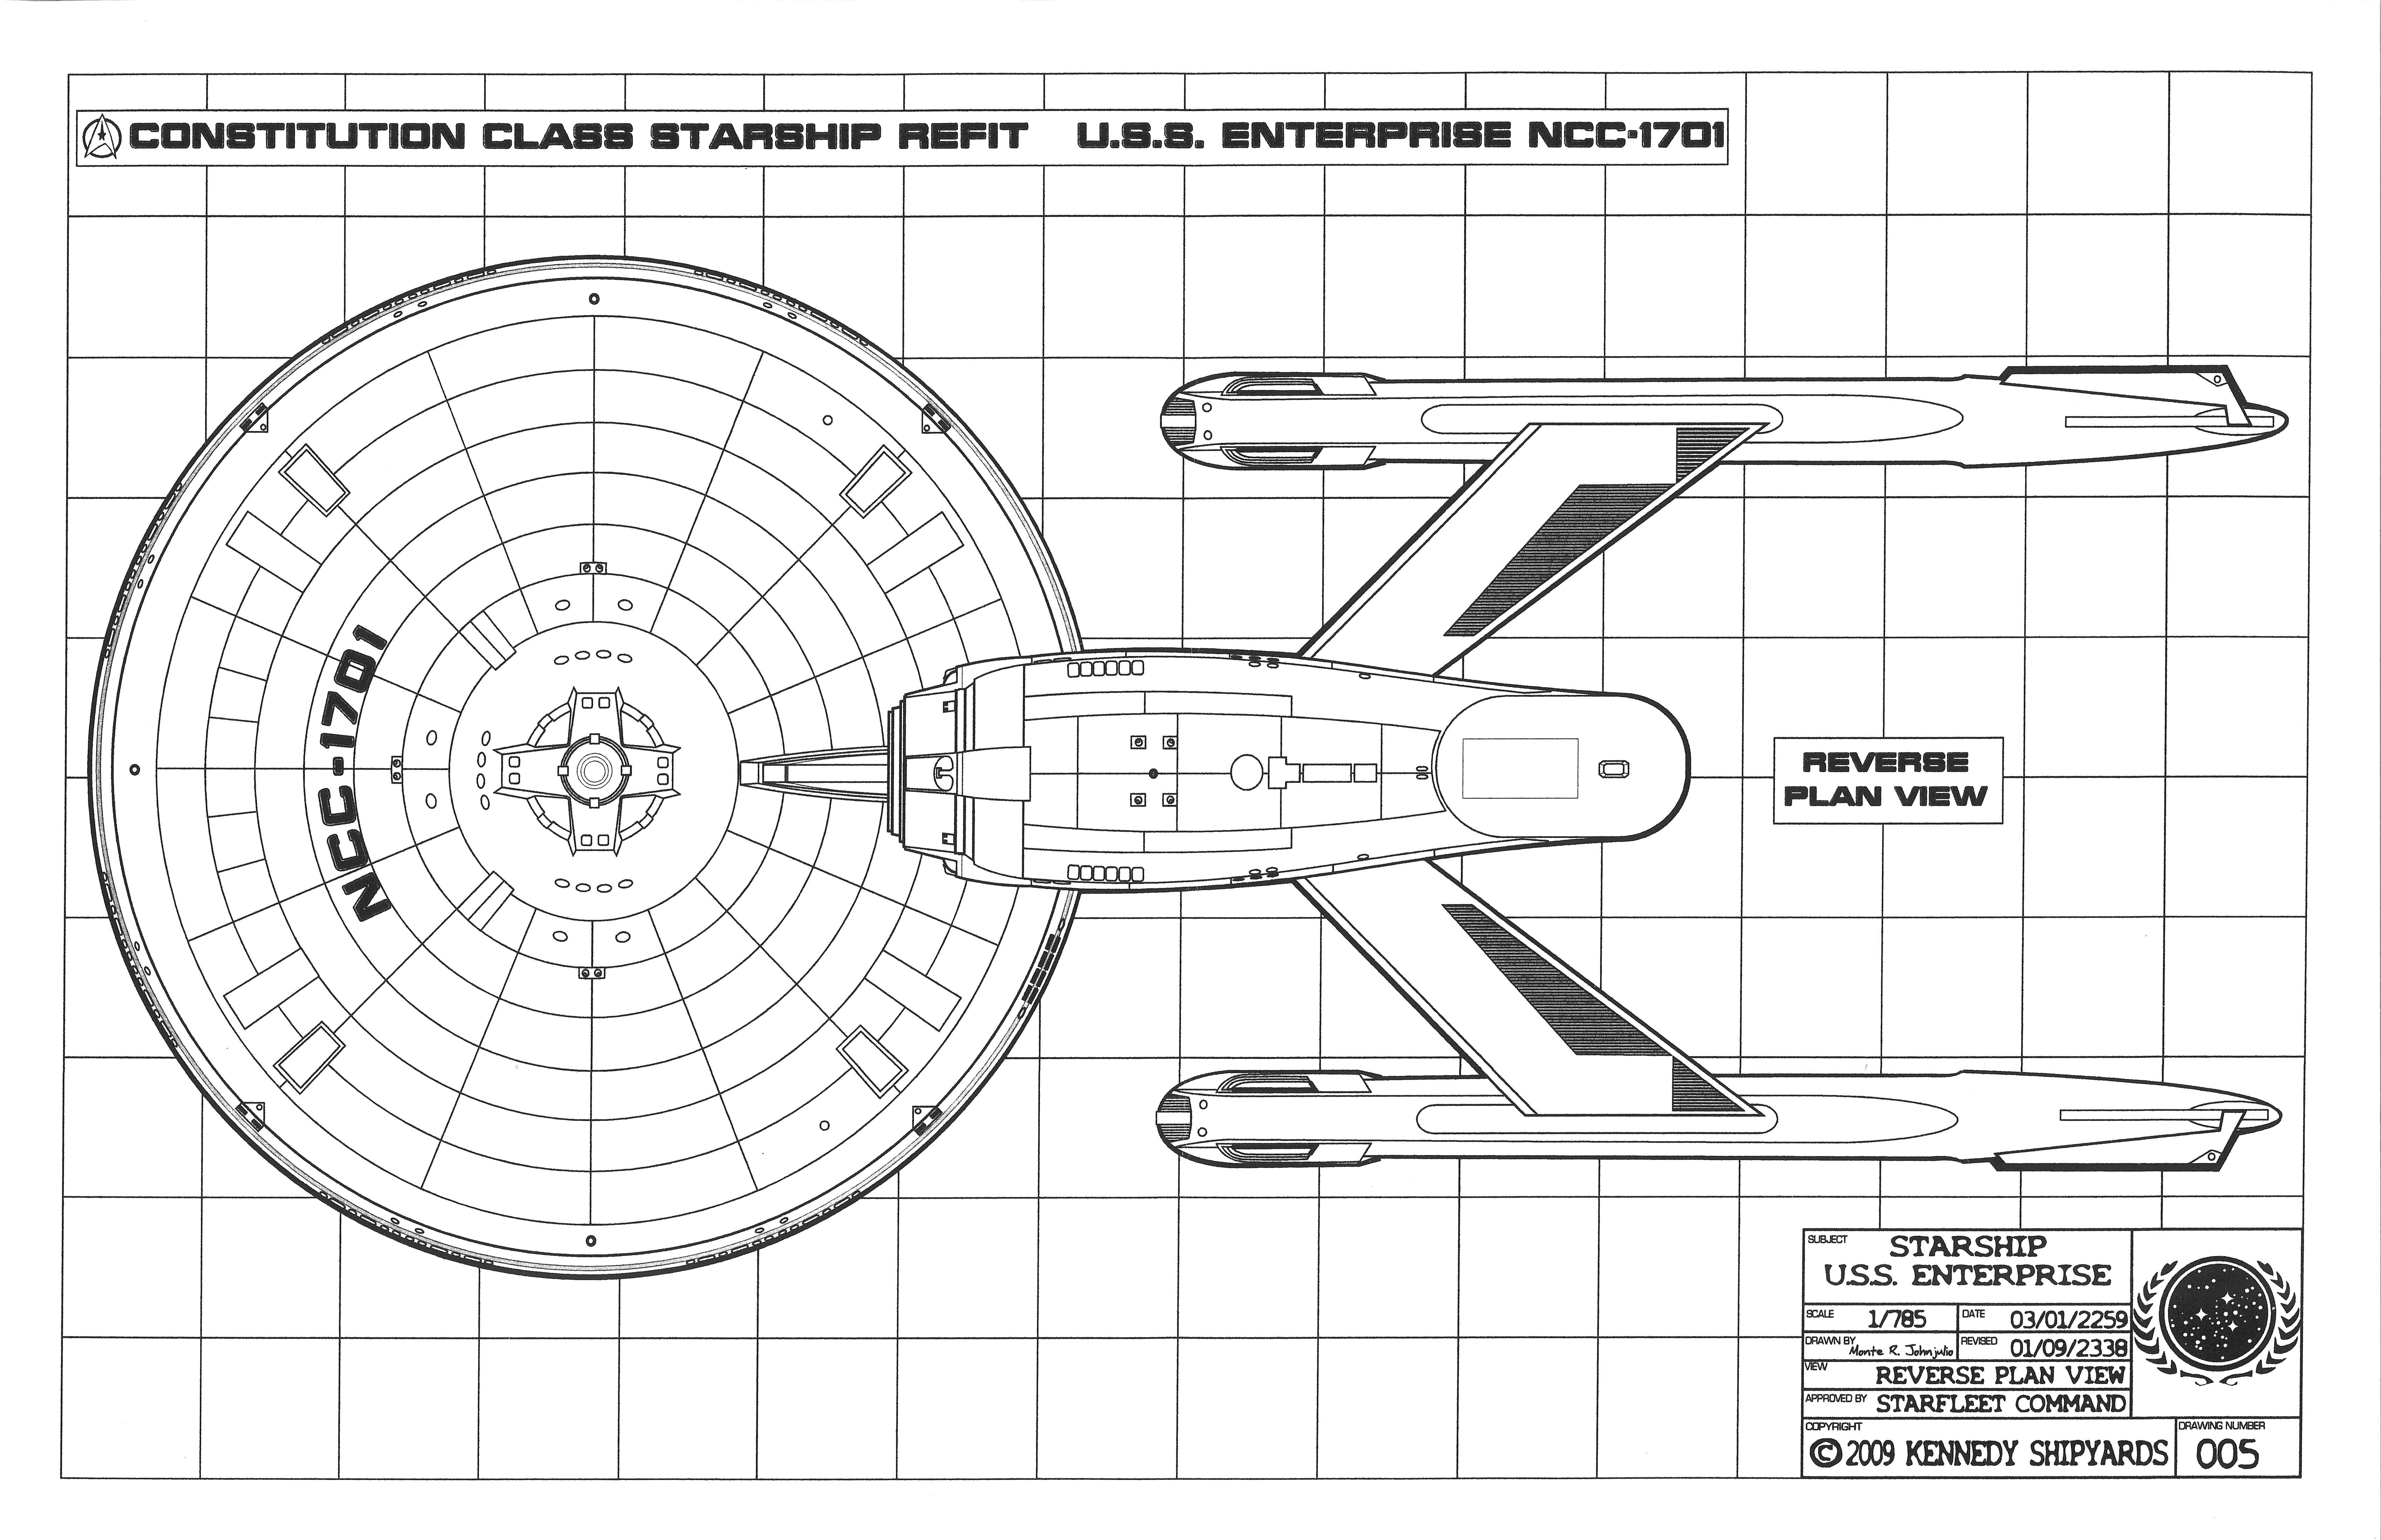 U.S.S. Enterprise NCC 1701   Constitution Class Starship Refit Blueprints